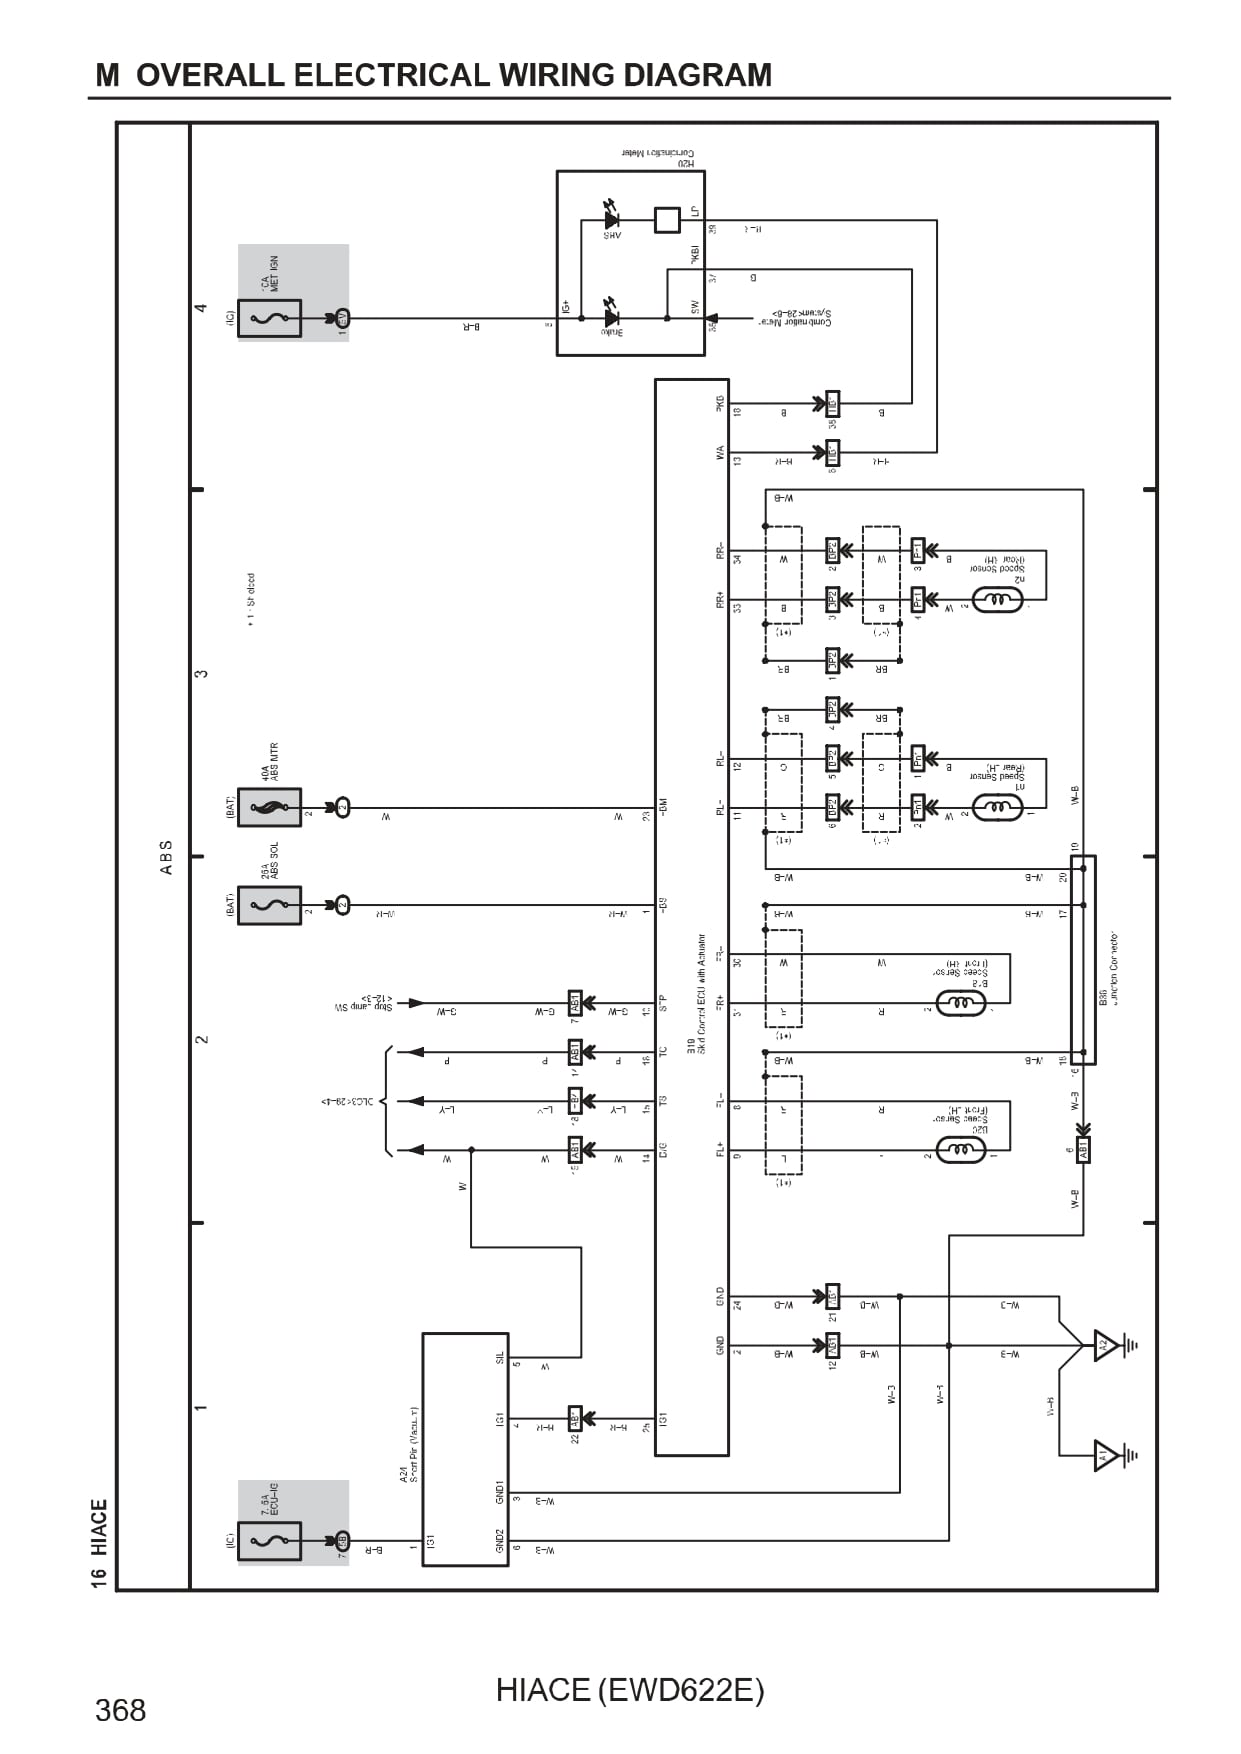 hiace-abs-wiring-diagram Qx Wiring Diagram on ignition switch, camper trailer, fog light, driving light, dump trailer, air compressor, simple motorcycle, dc motor, 4 pin relay, limit switch, basic electrical, boat battery, wire trailer, ford alternator,